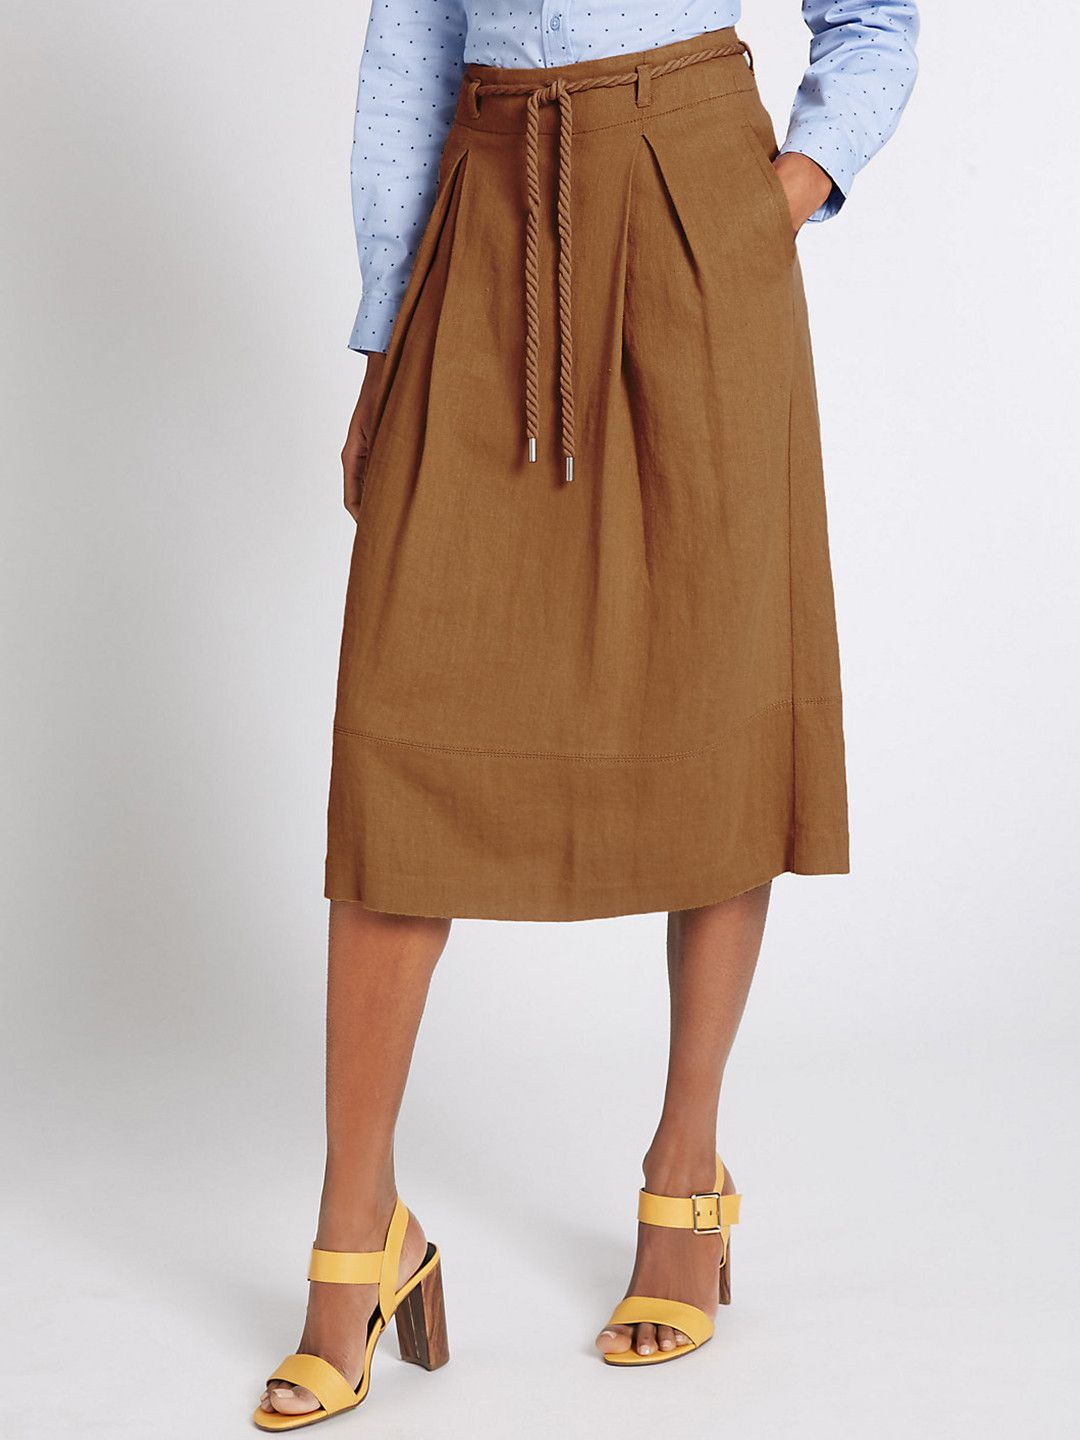 2dfa6cab0f8 Marks   Spencer Mustard Brown Midi A Line Skirt